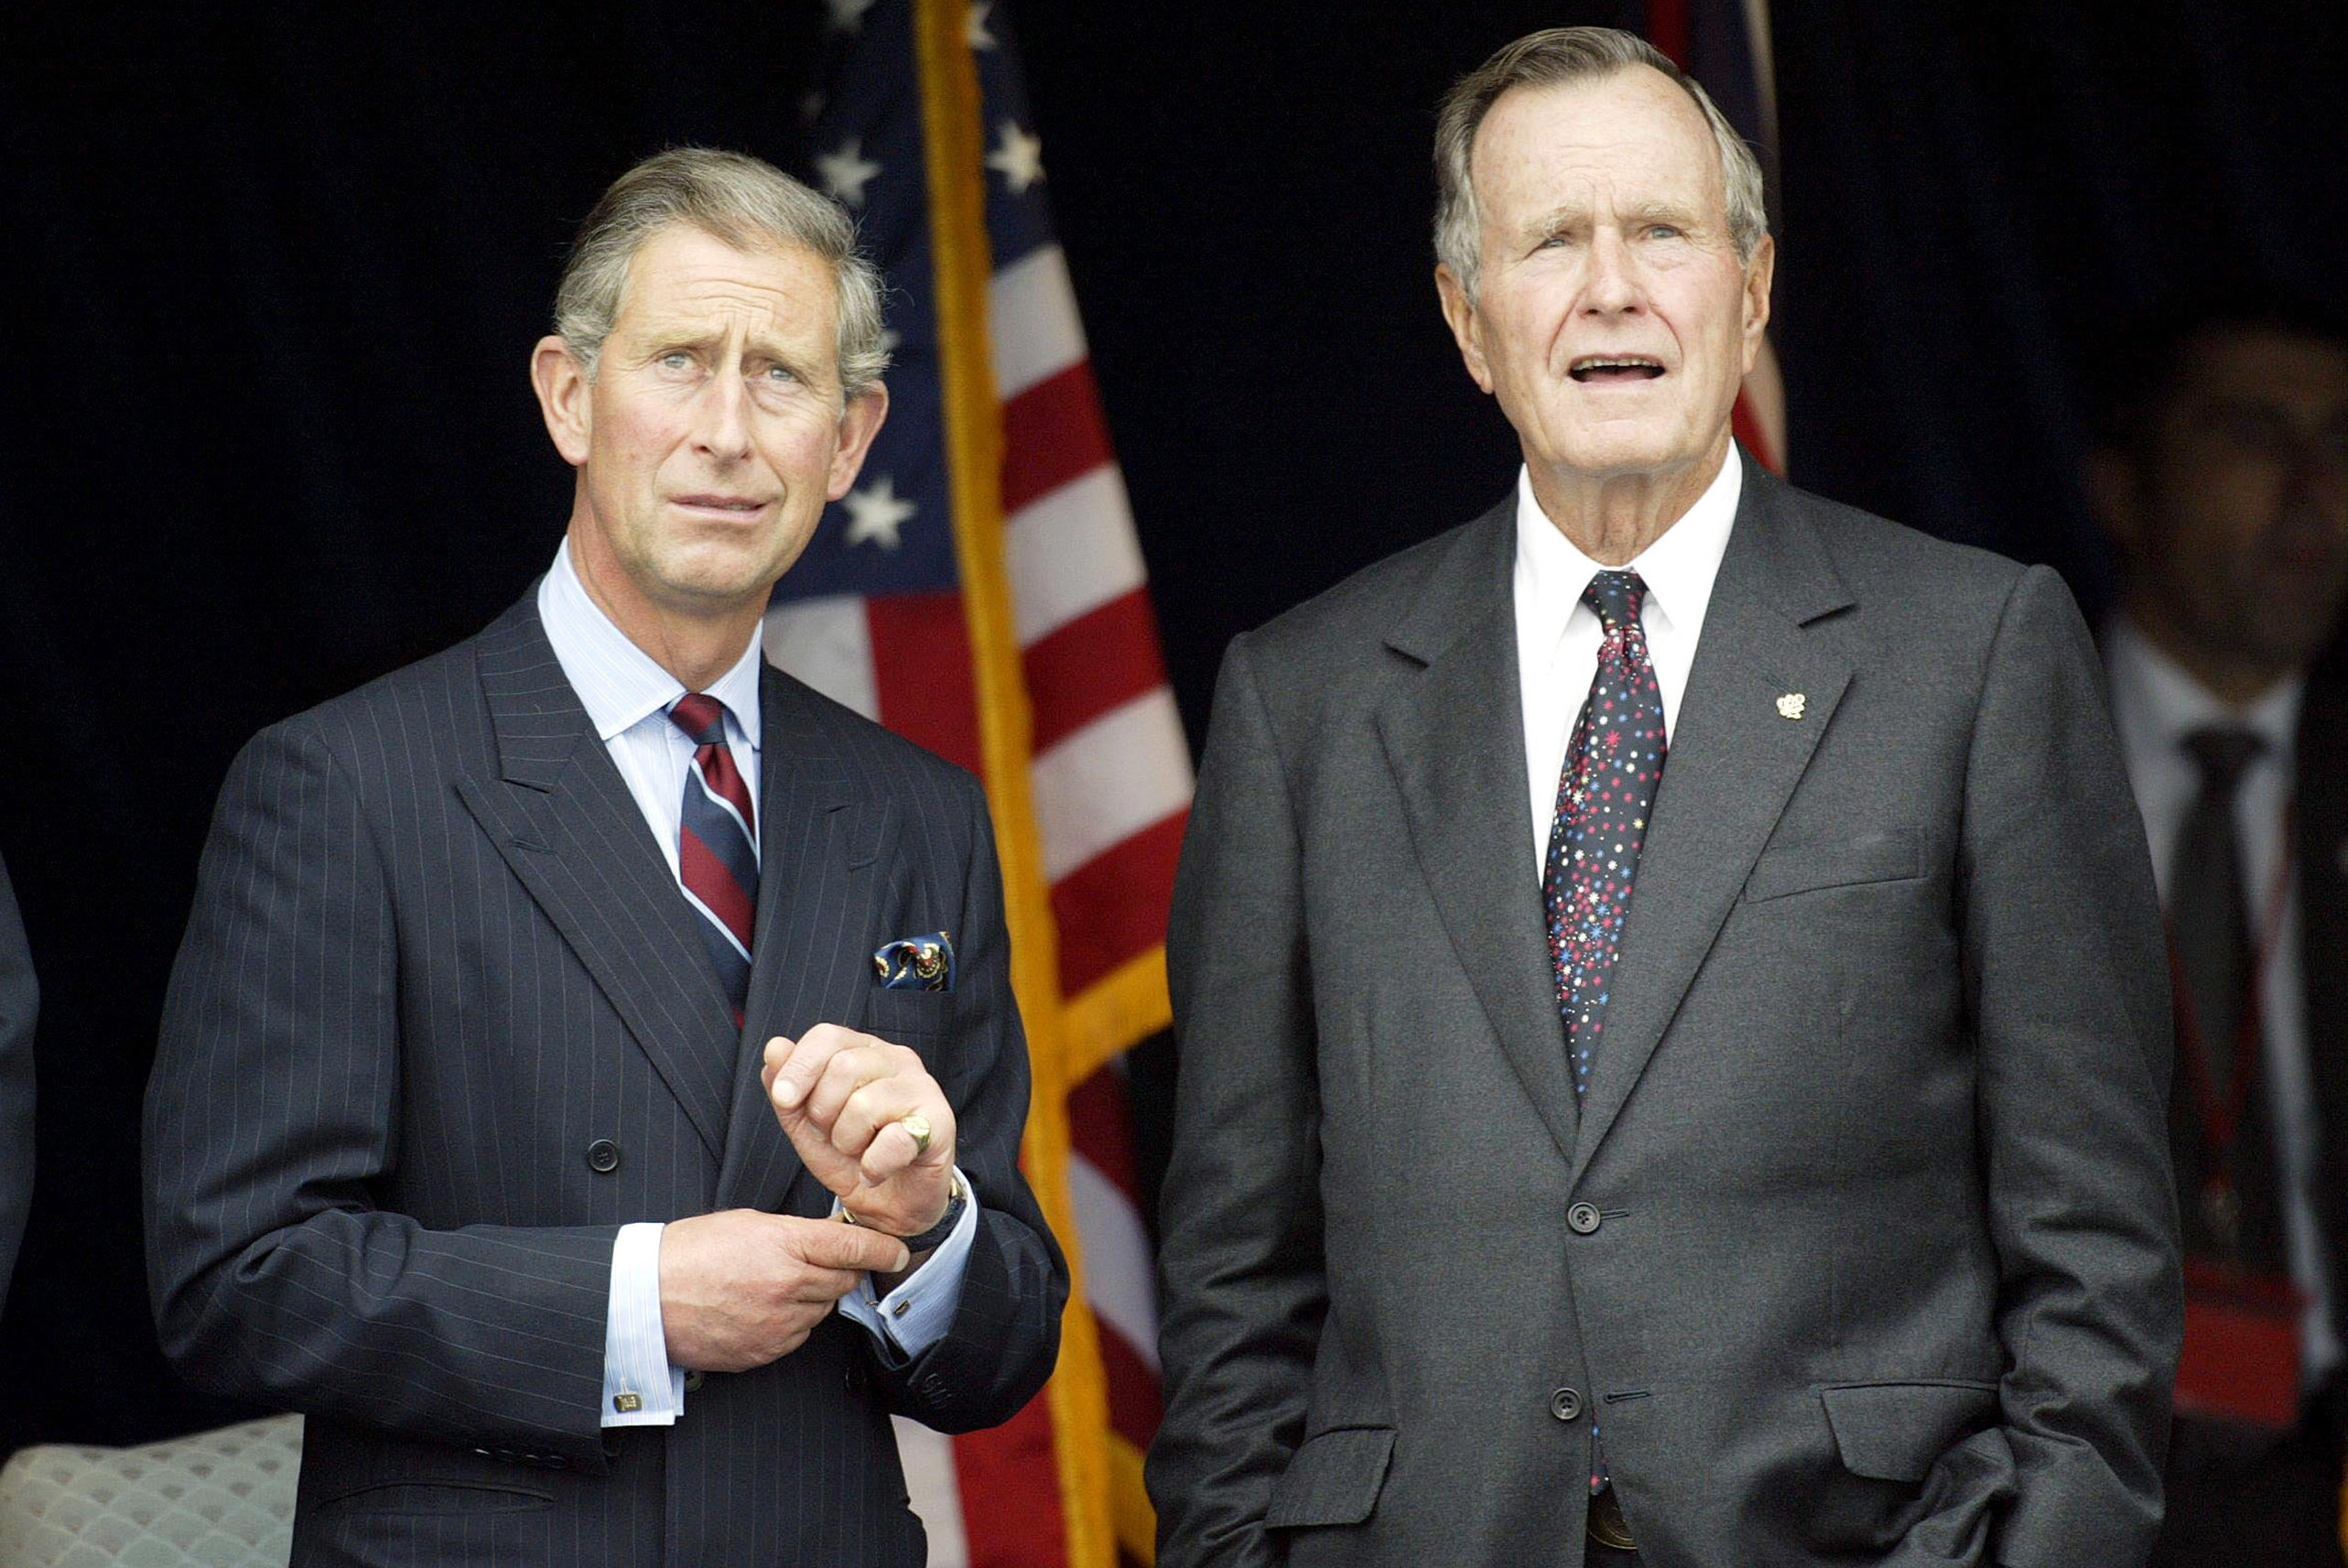 Prince Charles Will Travel to Washington, D.C. for George H.W. Bush's Funeral